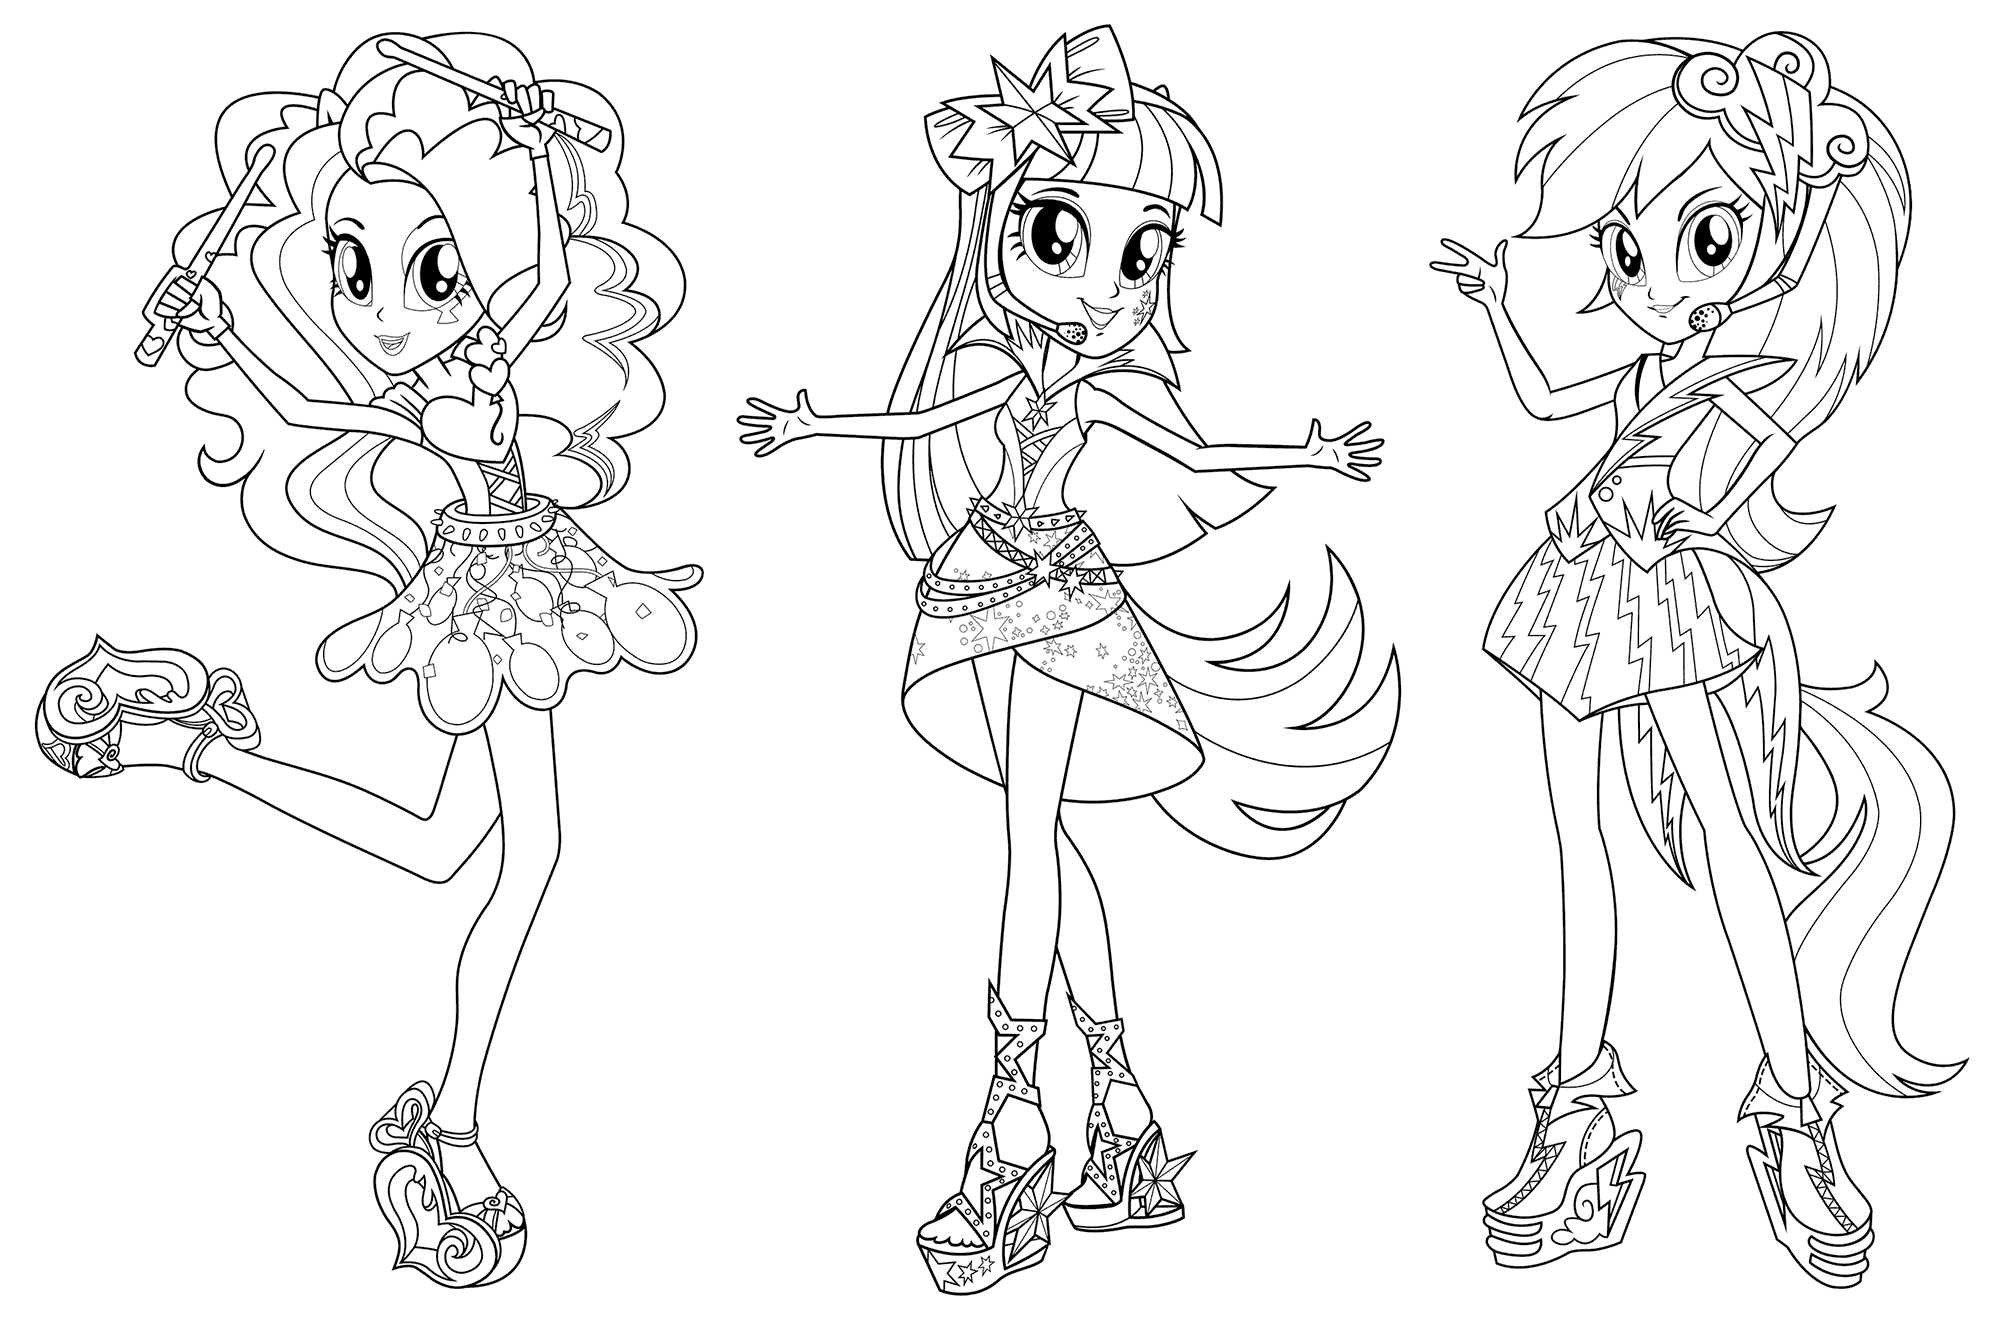 Equestria Girls Coloring Pages Endearing My Equestria Girl Rainbow Rocks Coloring Page  My Little Pony Design Ideas